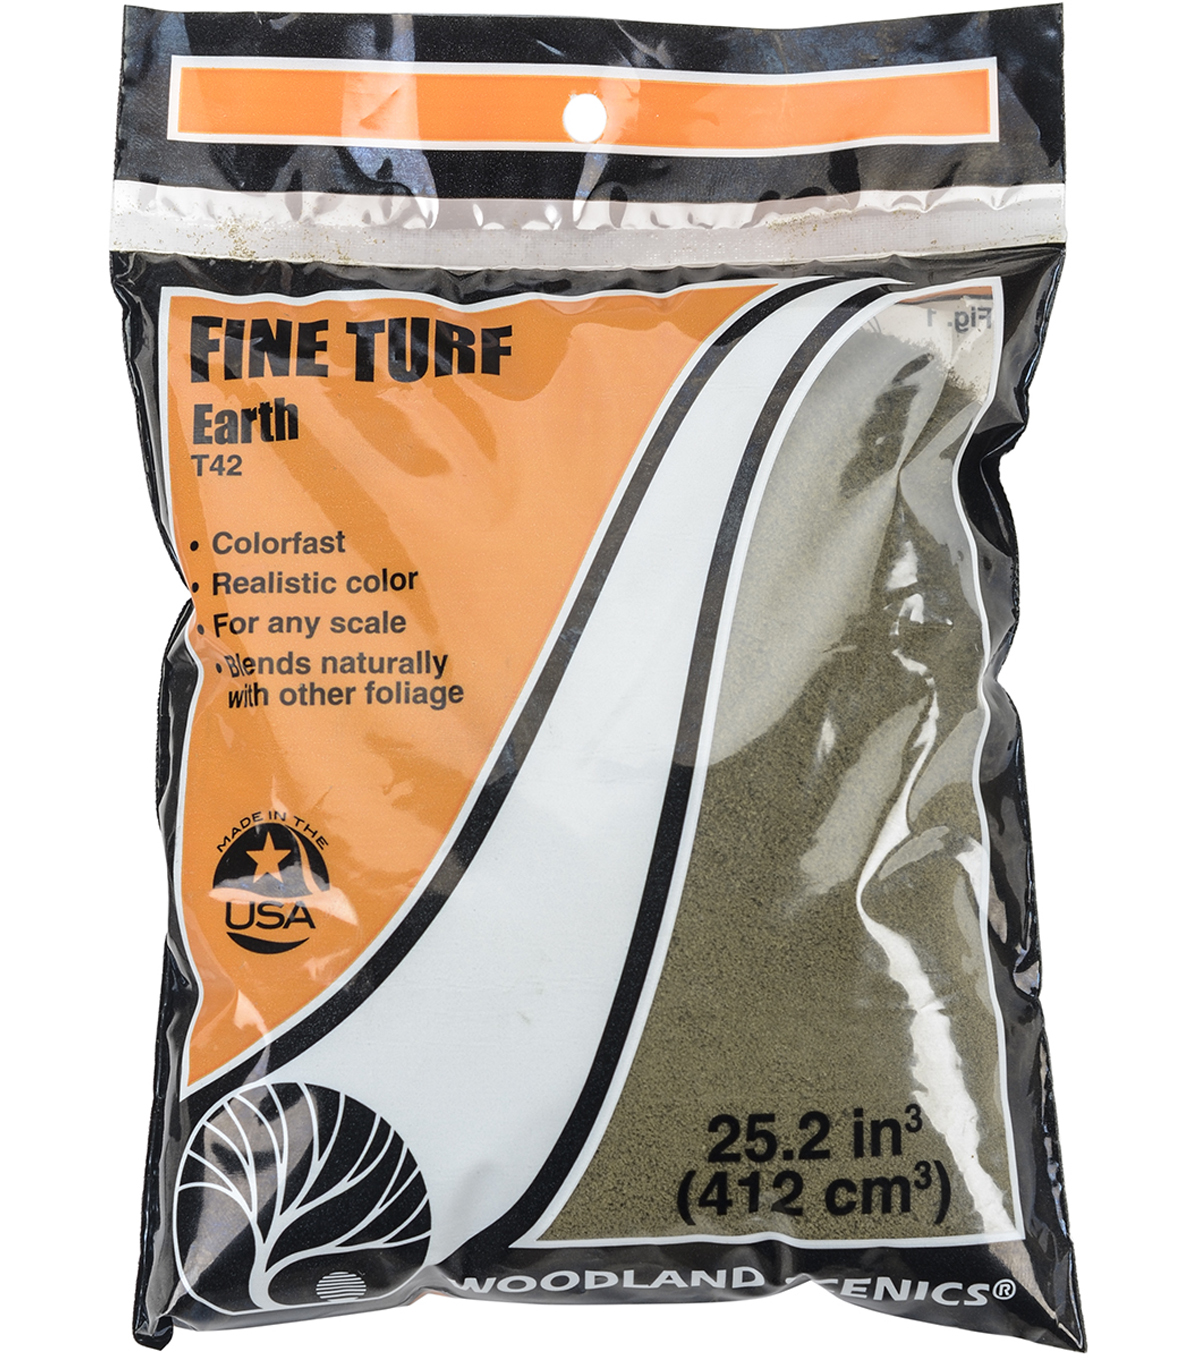 Woodland Scenics Fine Turf 18 To 25.2 Cubic Inches, Earth - Fine